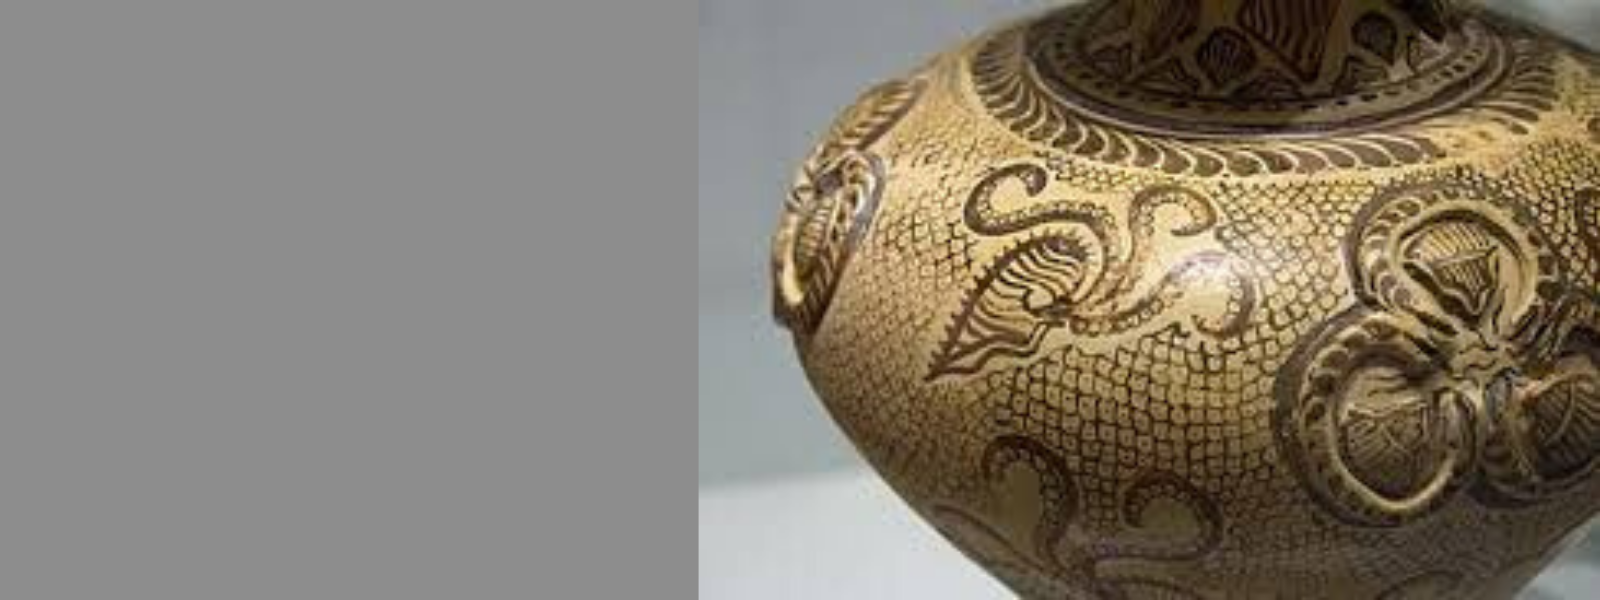 Rustica Gift Minoan Pottery History Marine and Floral